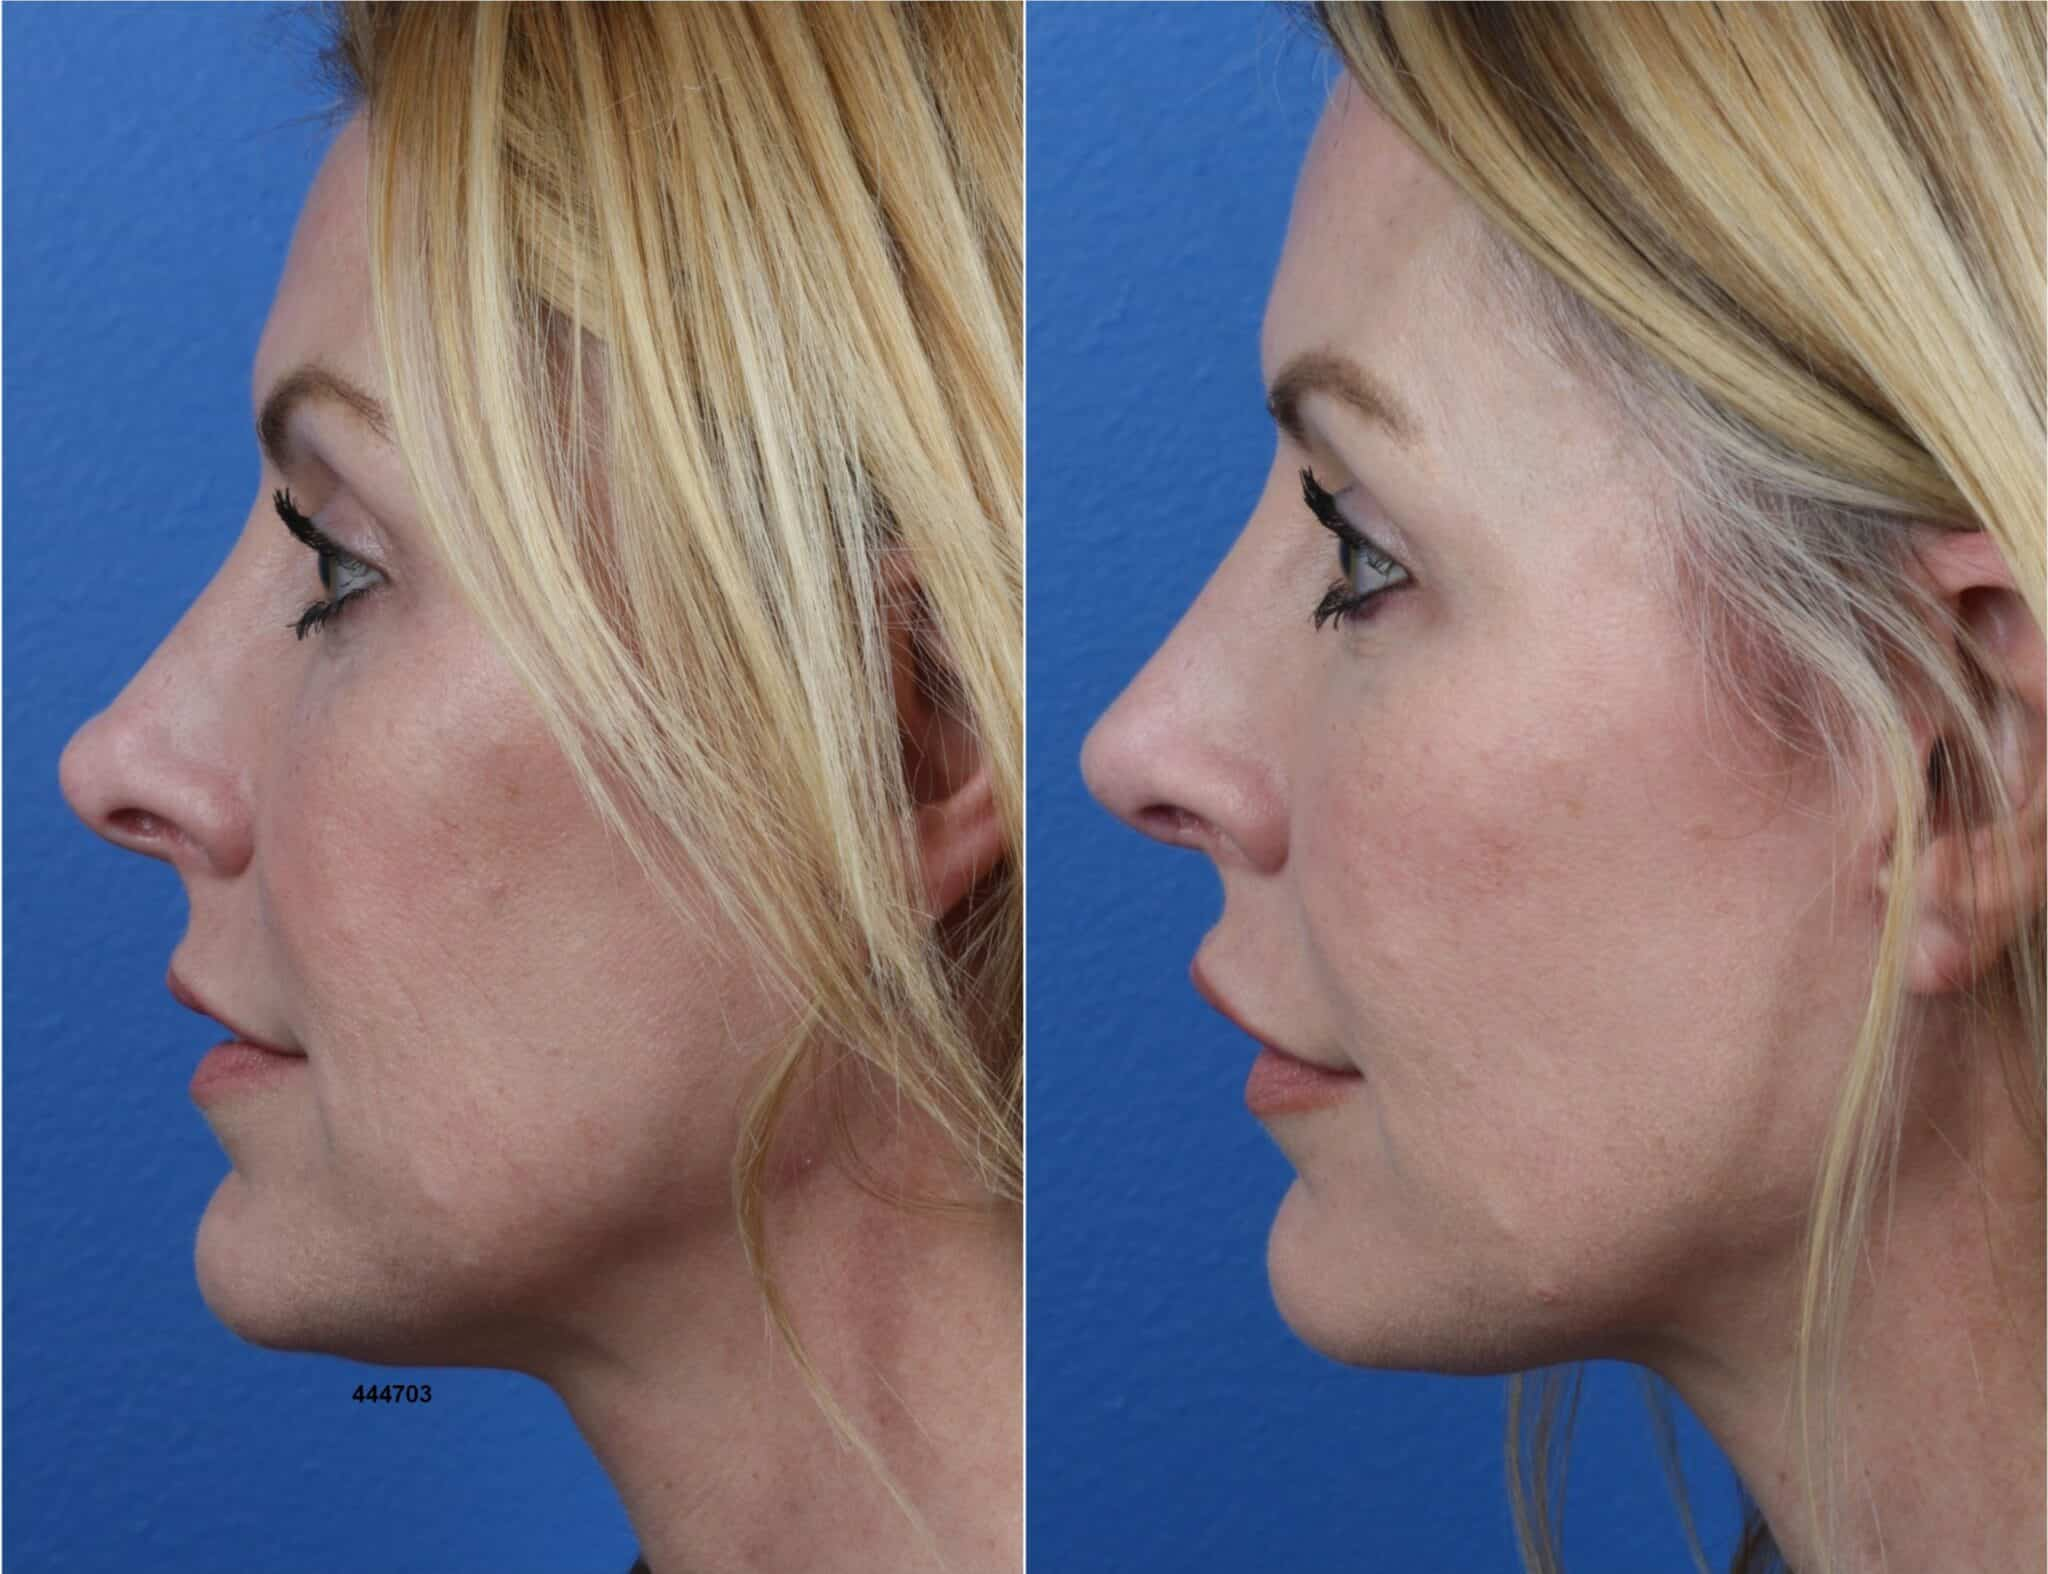 Rhinoplasty to Refine Nasal Tip and Enhance Facial Profile by Dr. Miller